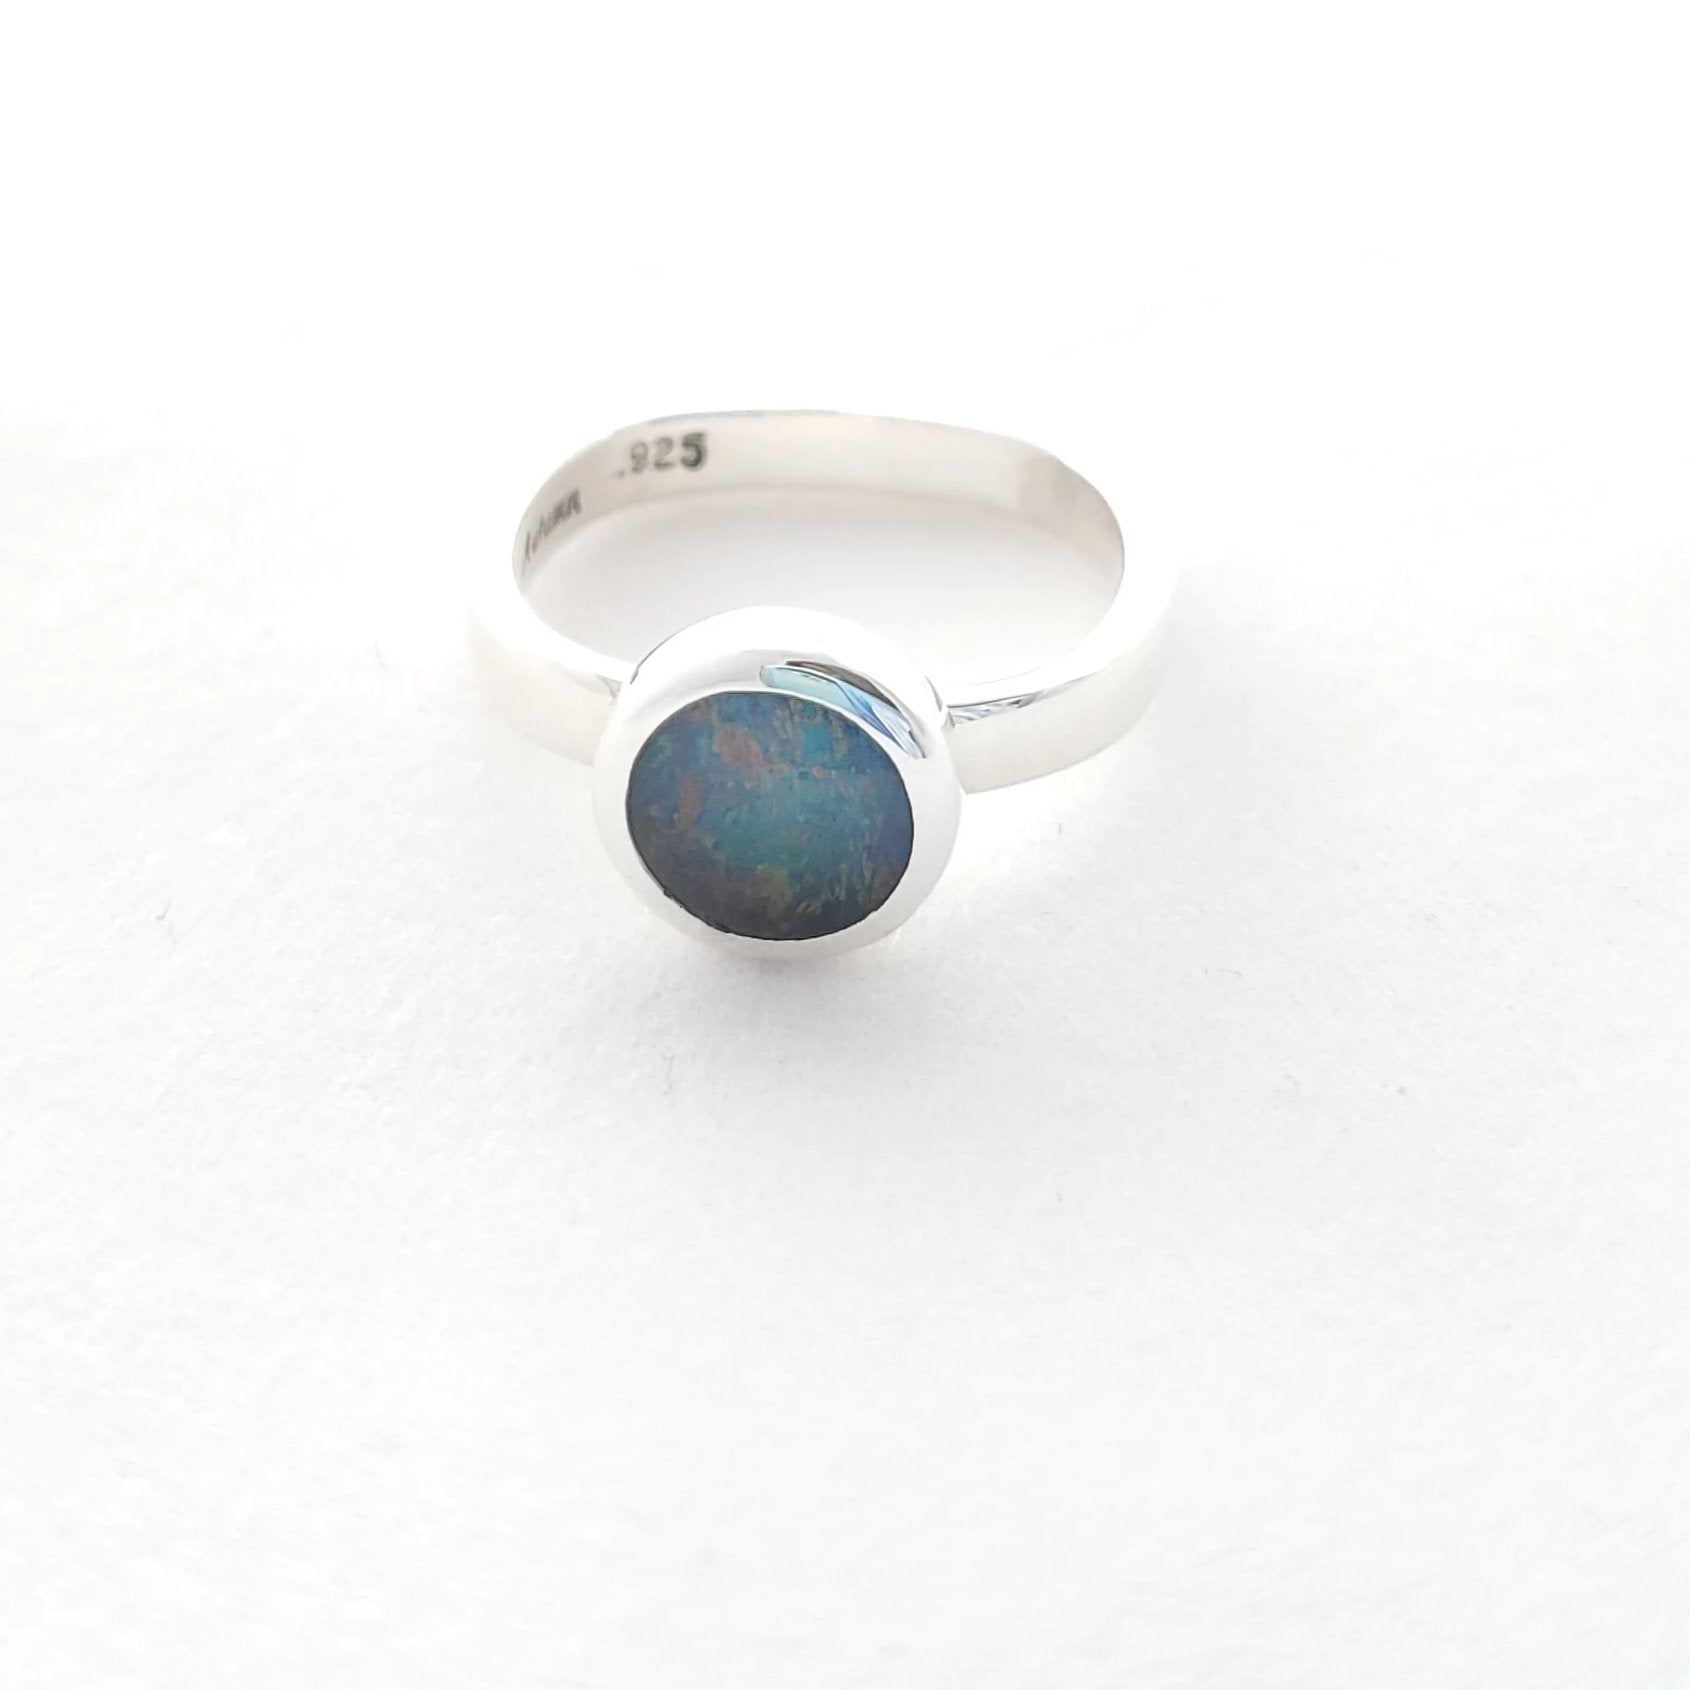 Laying down face on view of opal triplet ring.